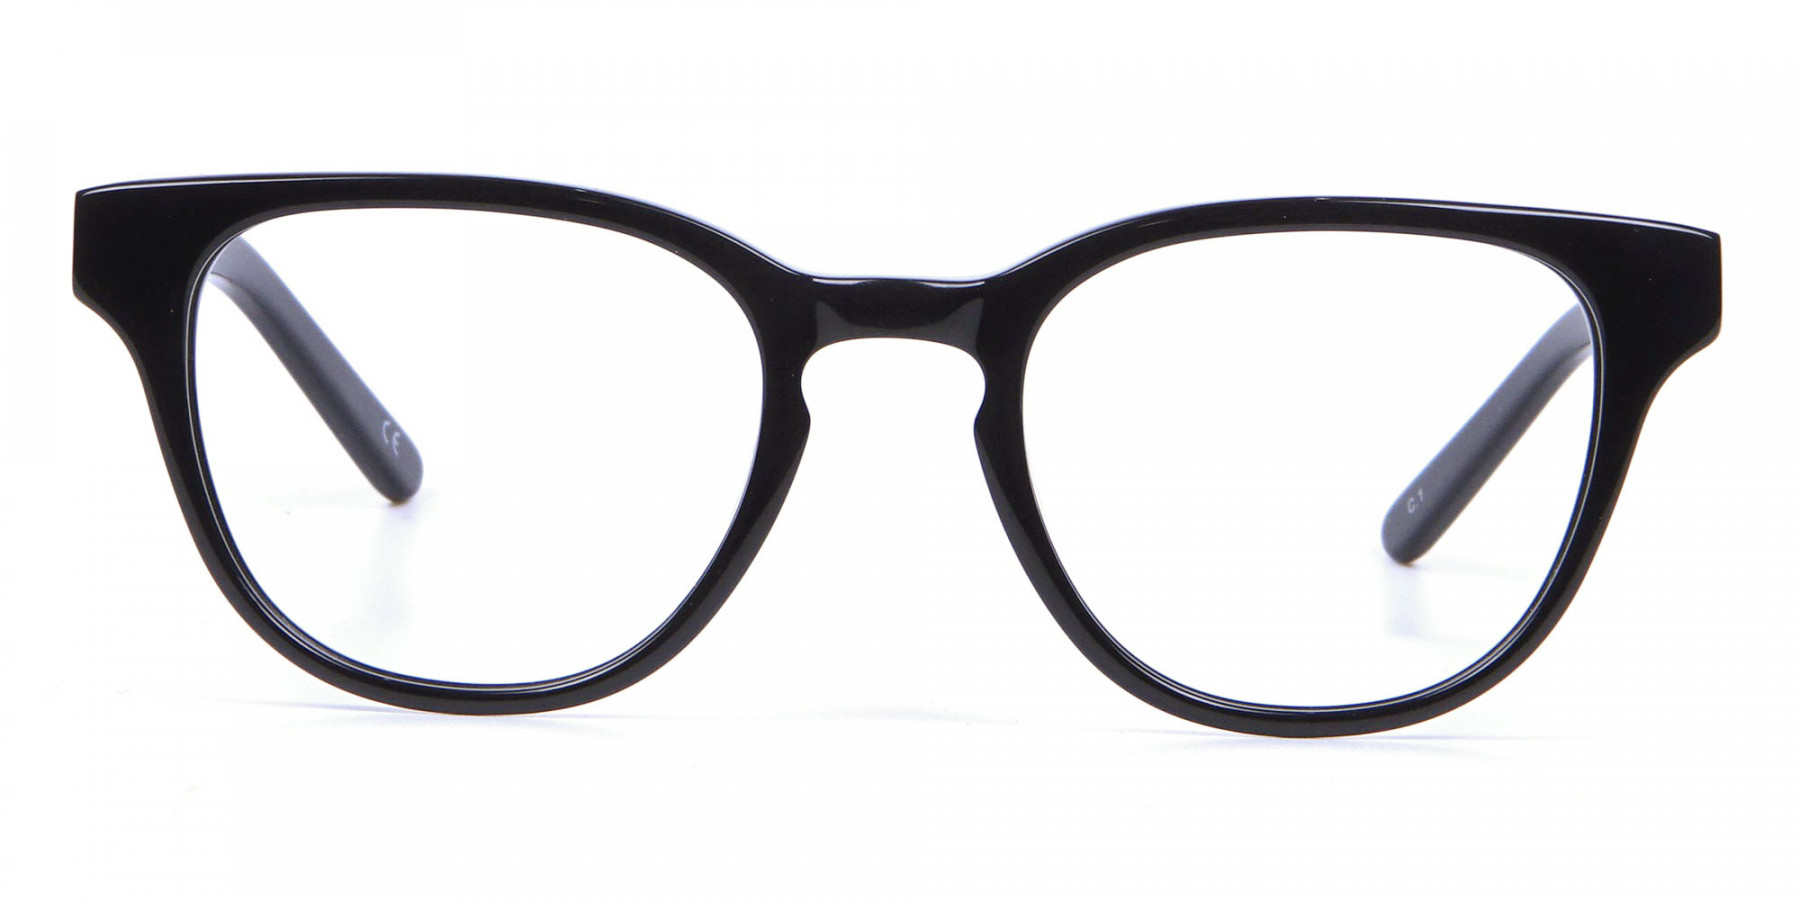 Thick Line Detailed Glasses in Black